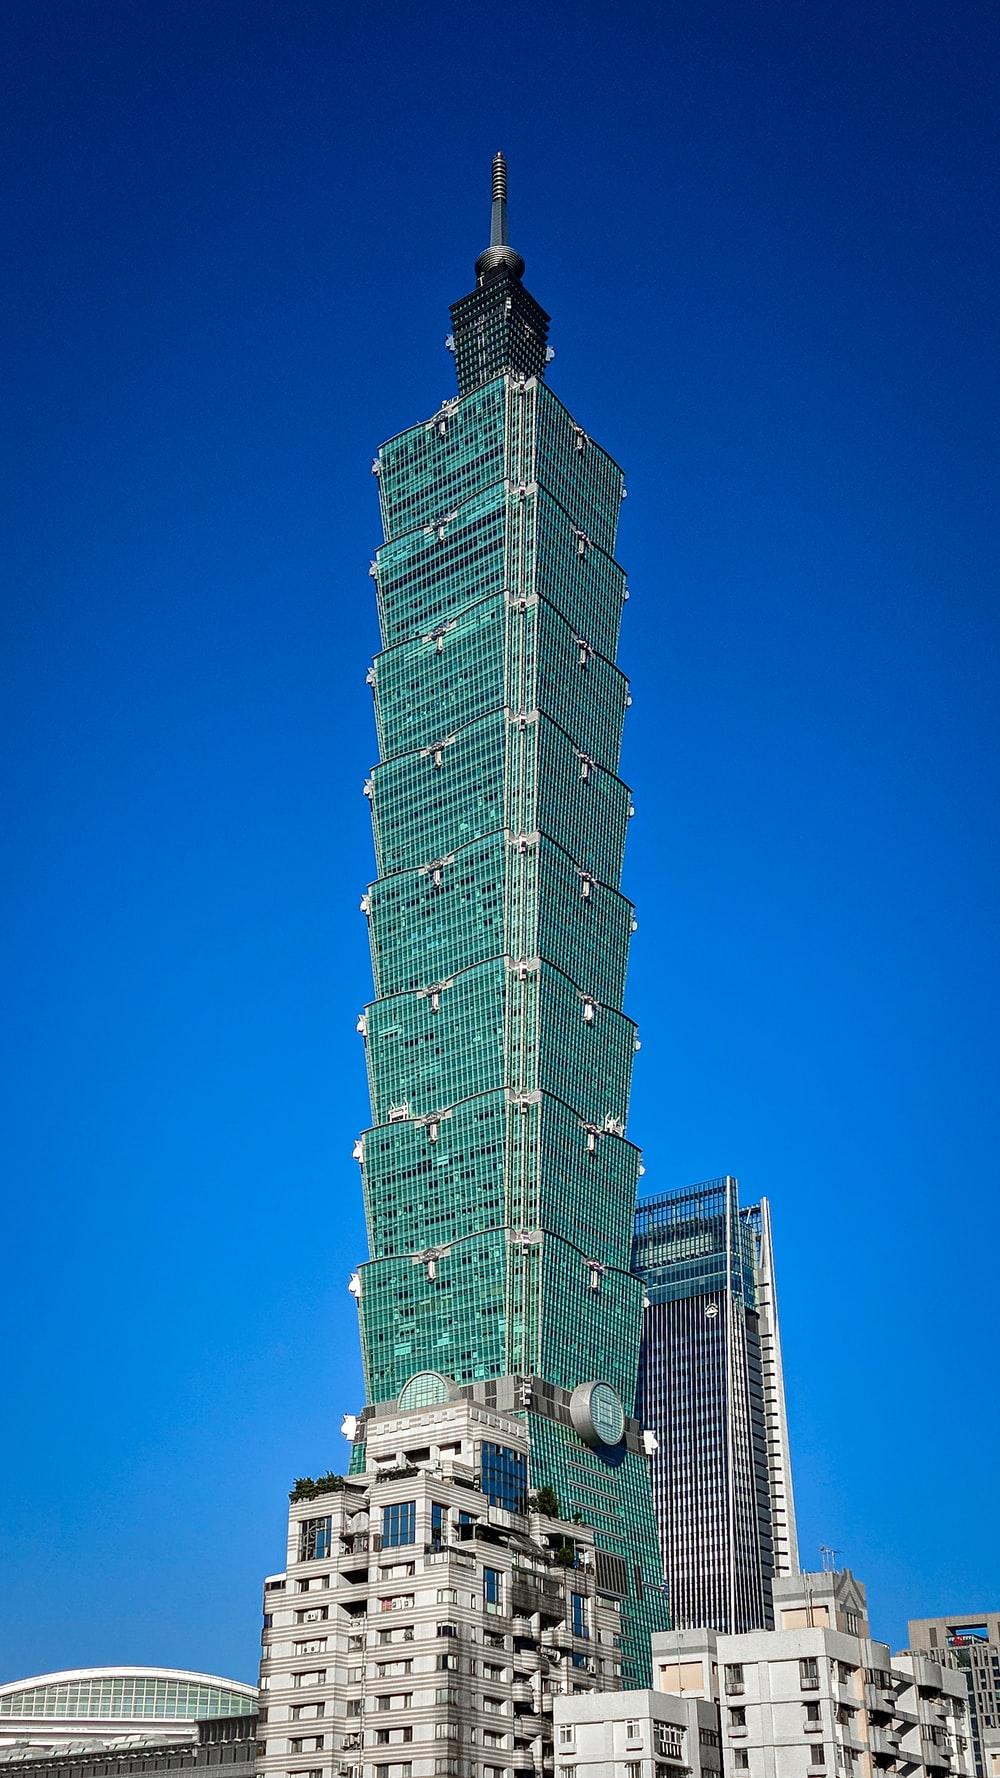 green and white high rise building under blue sky during daytime